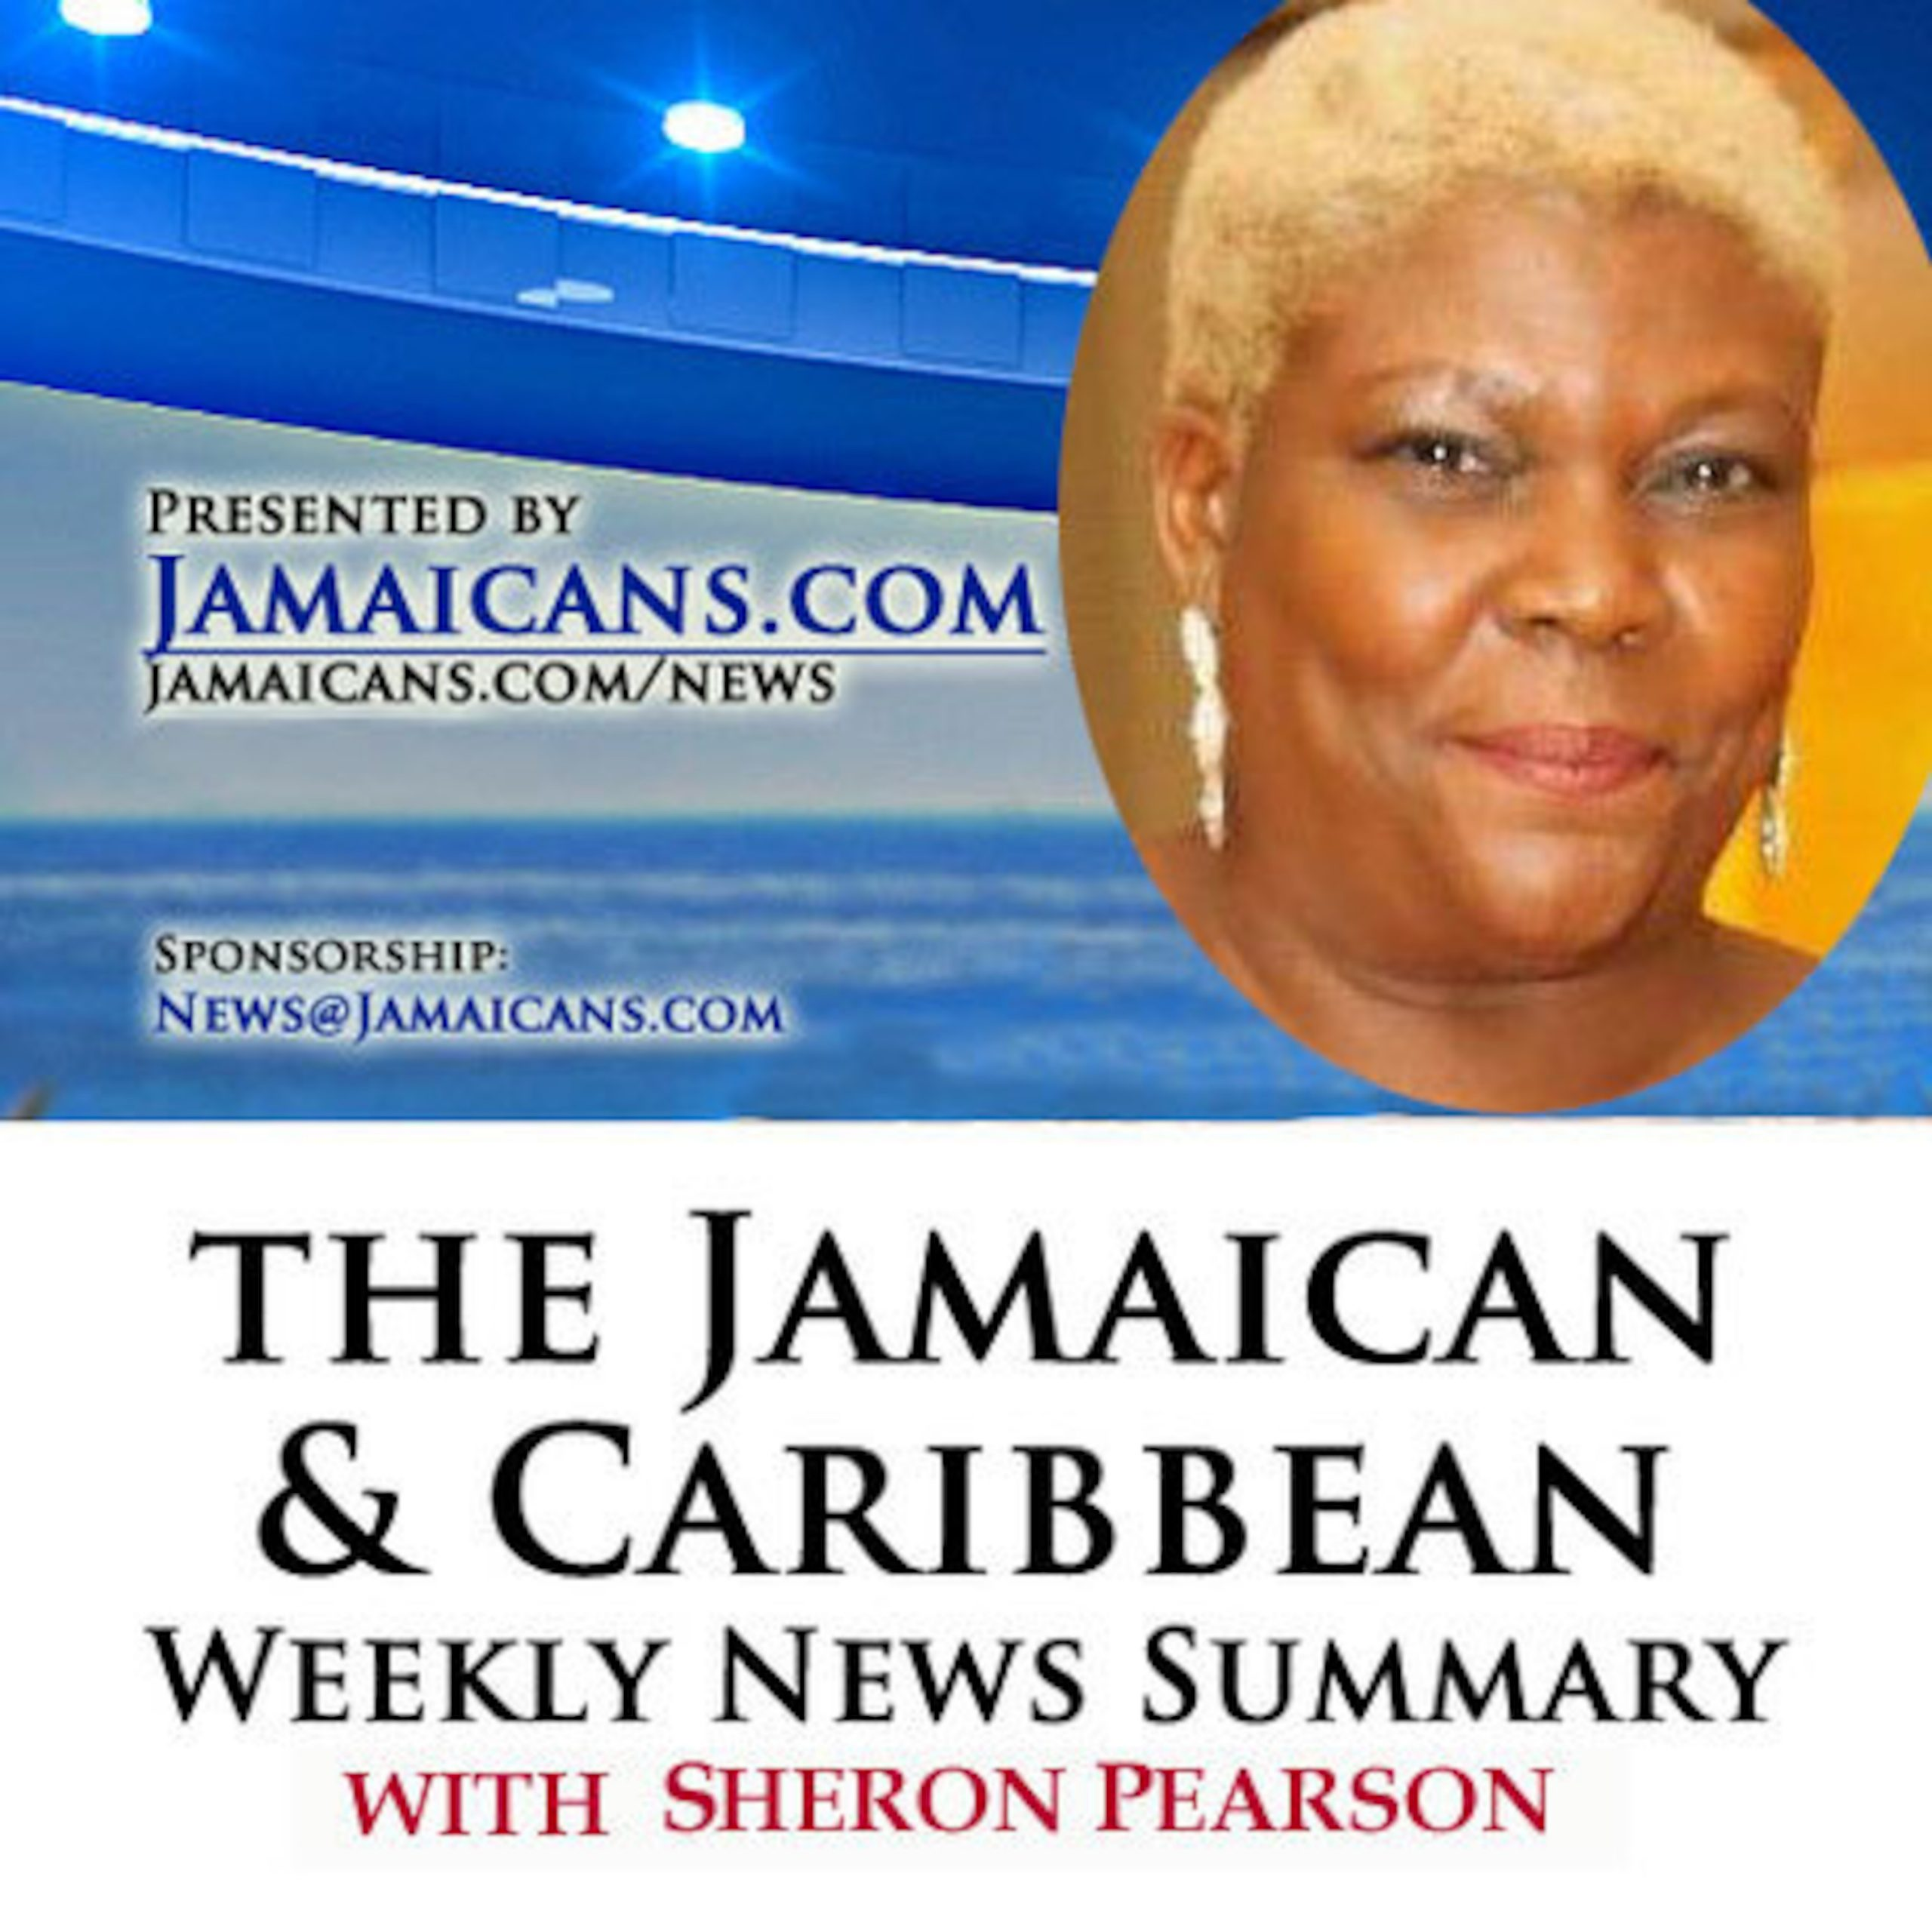 Listen to the Podcast of The Jamaica & Caribbean Weekly News Summary for the week ending December 20, 2019